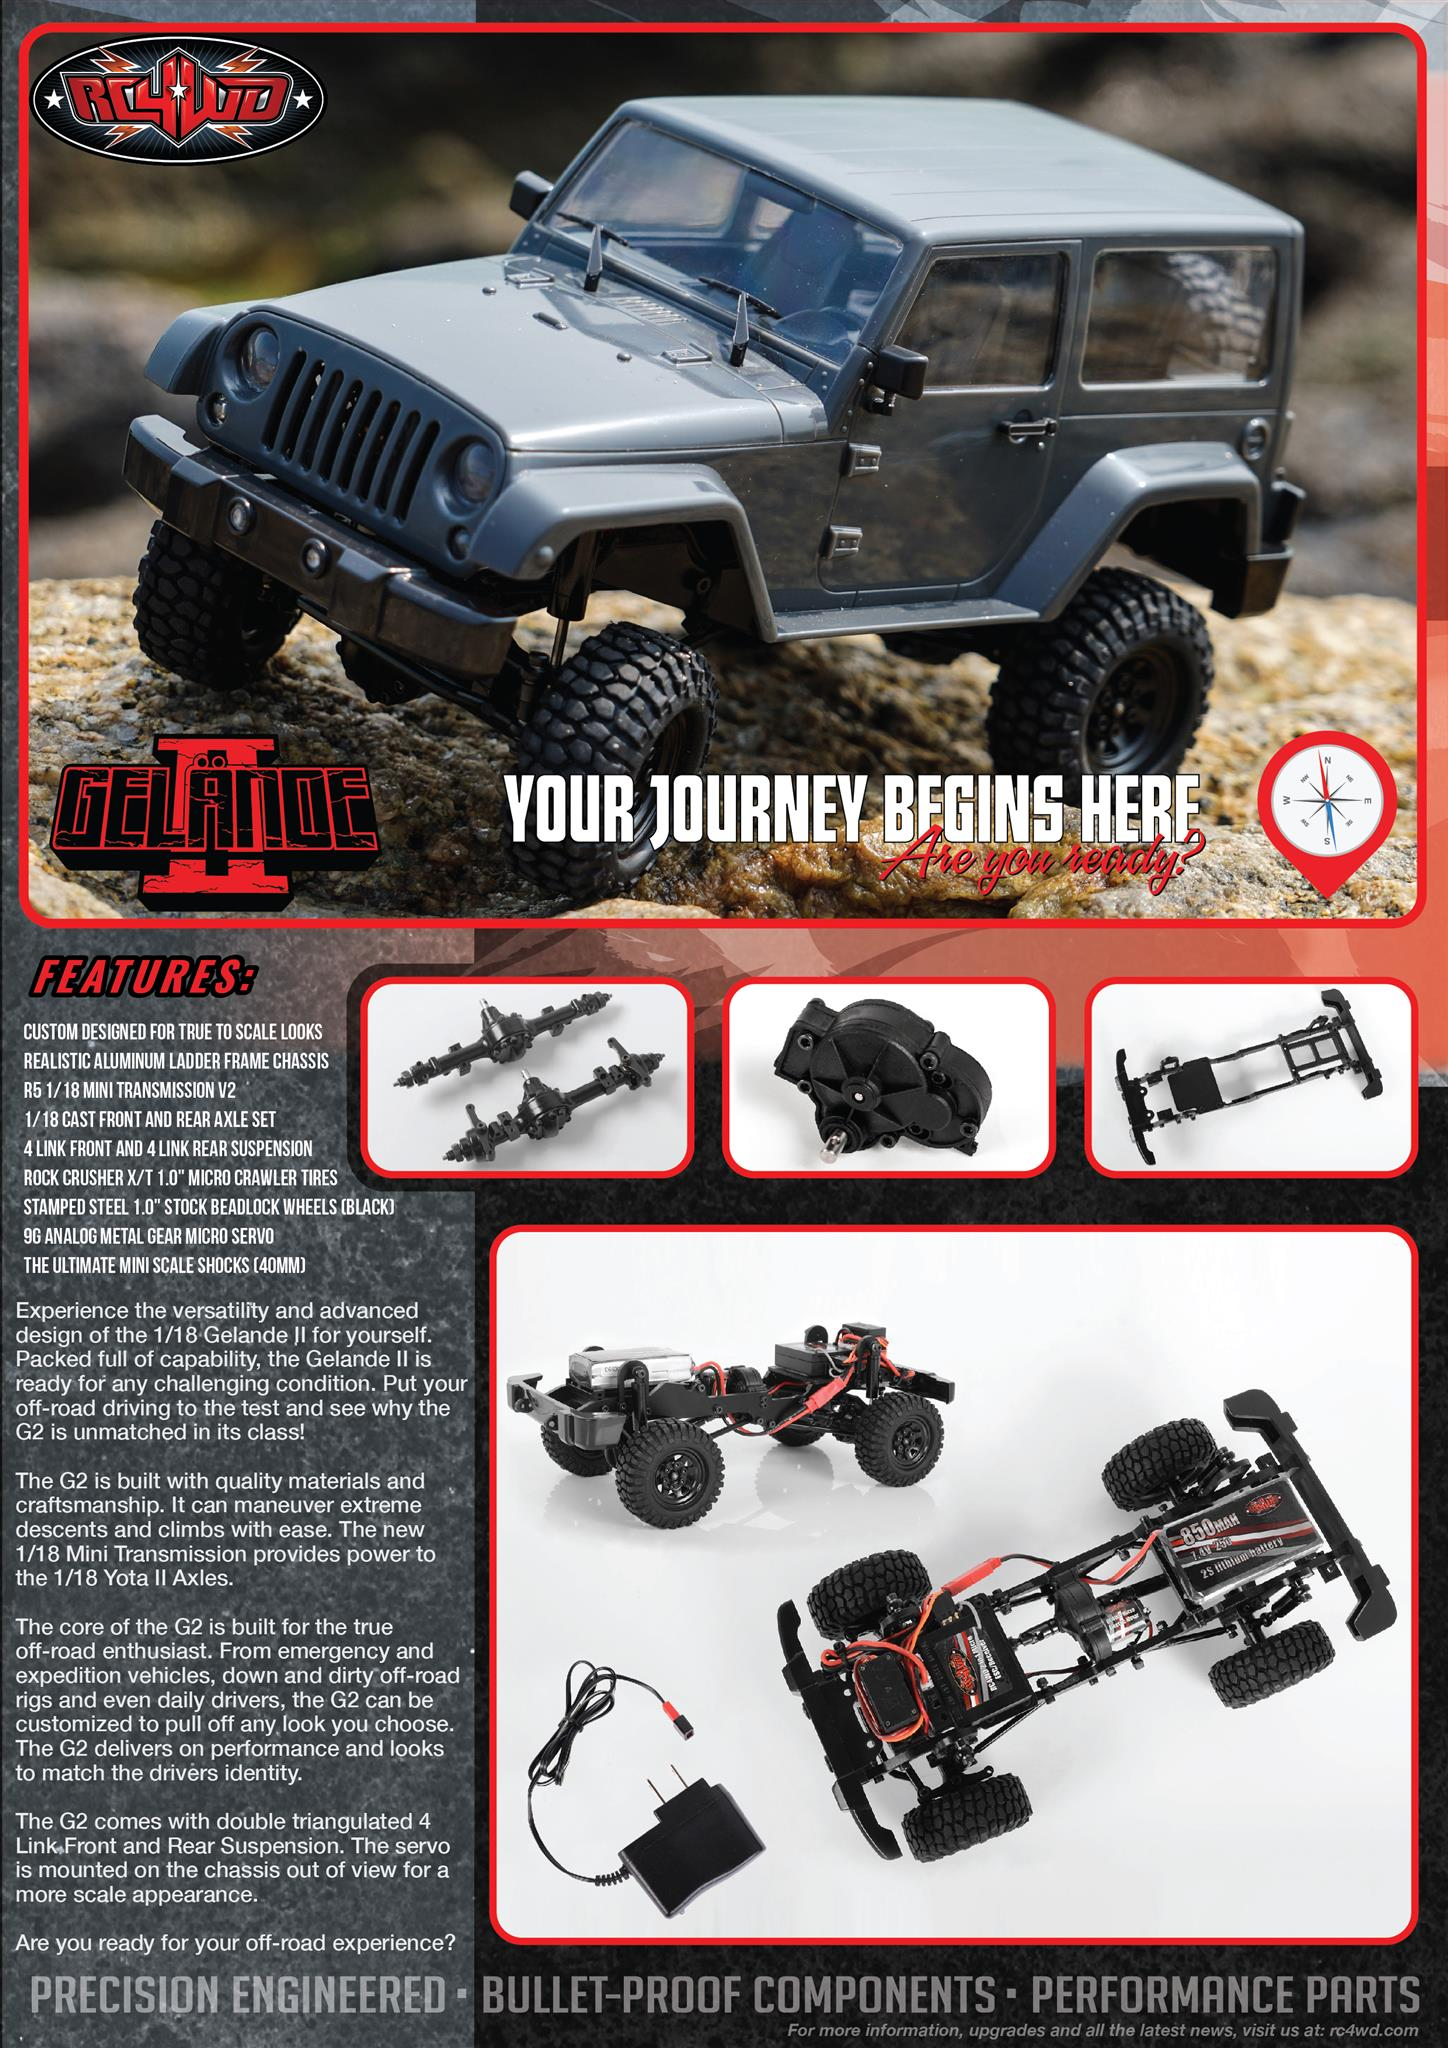 Rc4wd 1 18 Gelande Ii Rtr W Black Rock Body Set Jeep Suspension Parts Experience The Versatility And Advanced Design Of For Yourself Packed Full Capability Is Ready Any Challenging